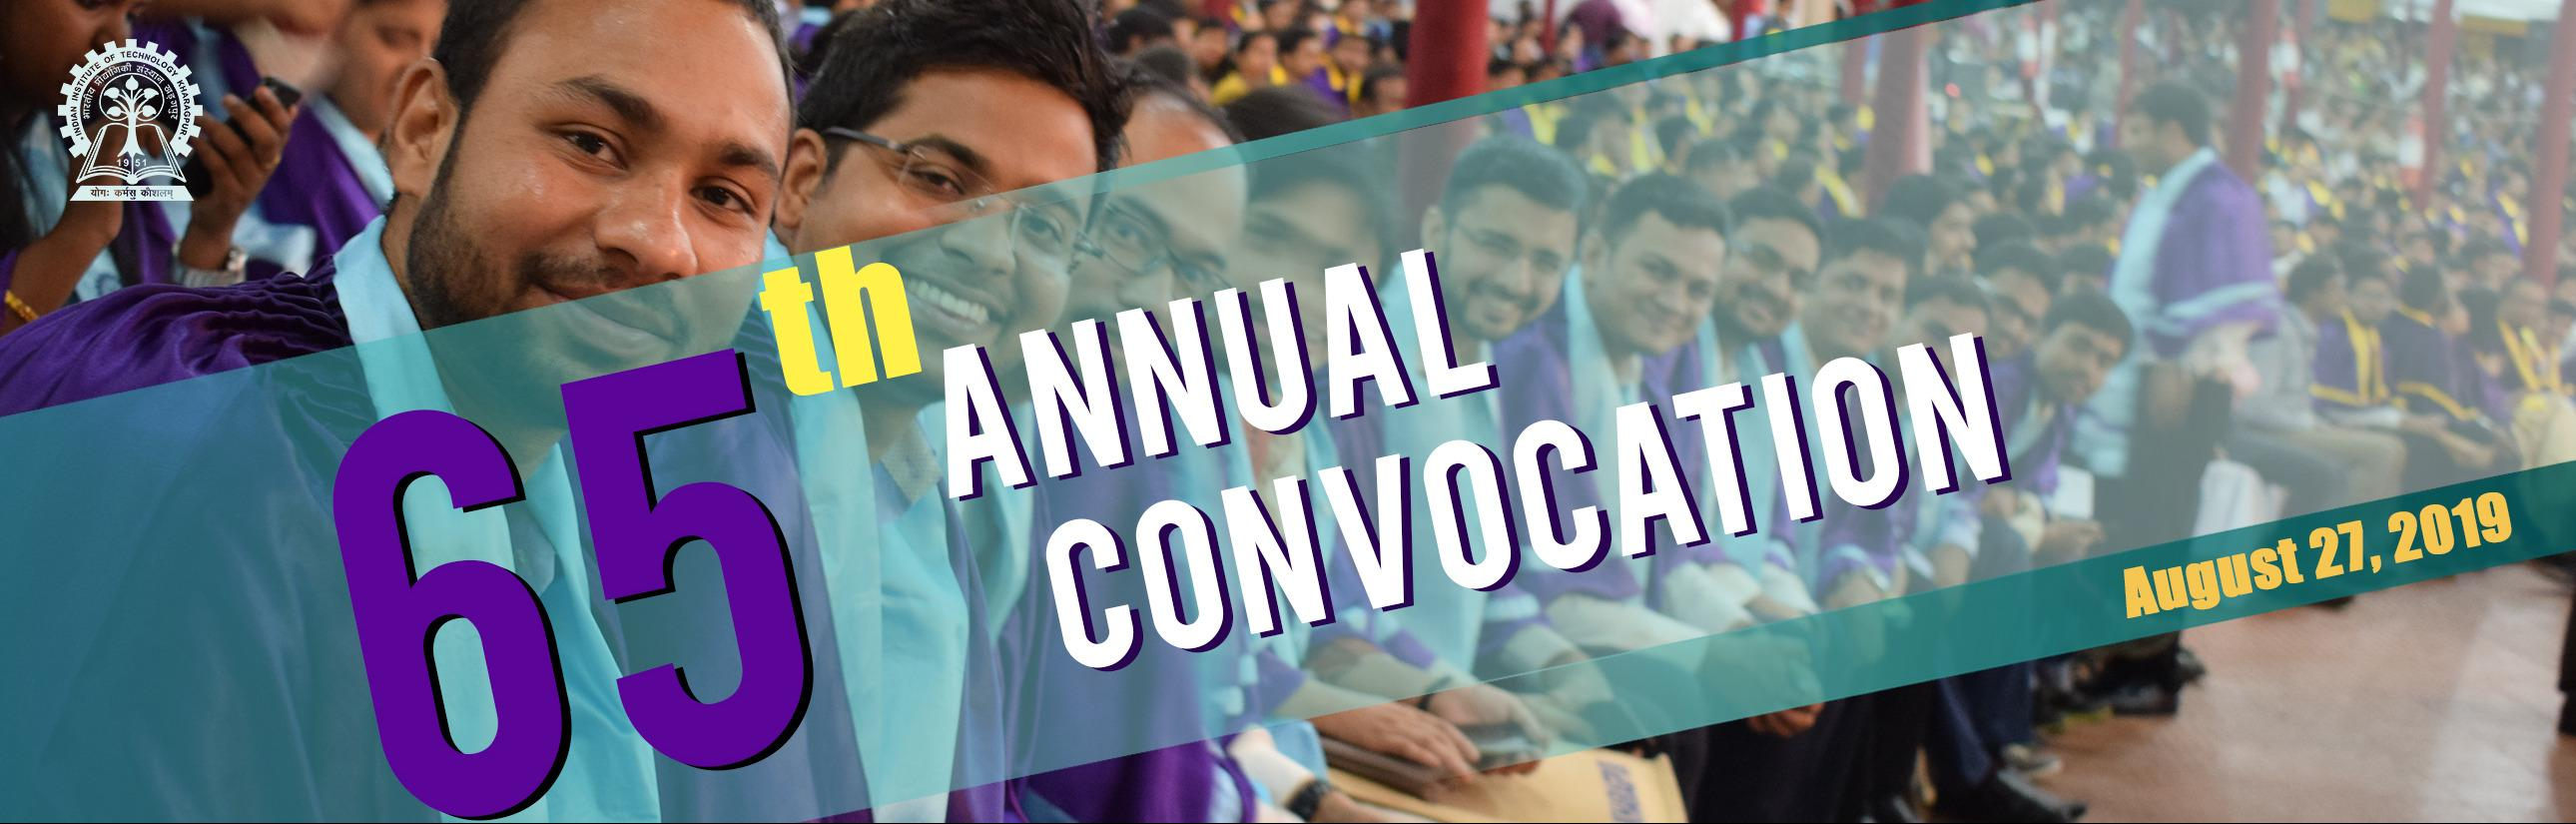 Celebrating the 65th Convocation